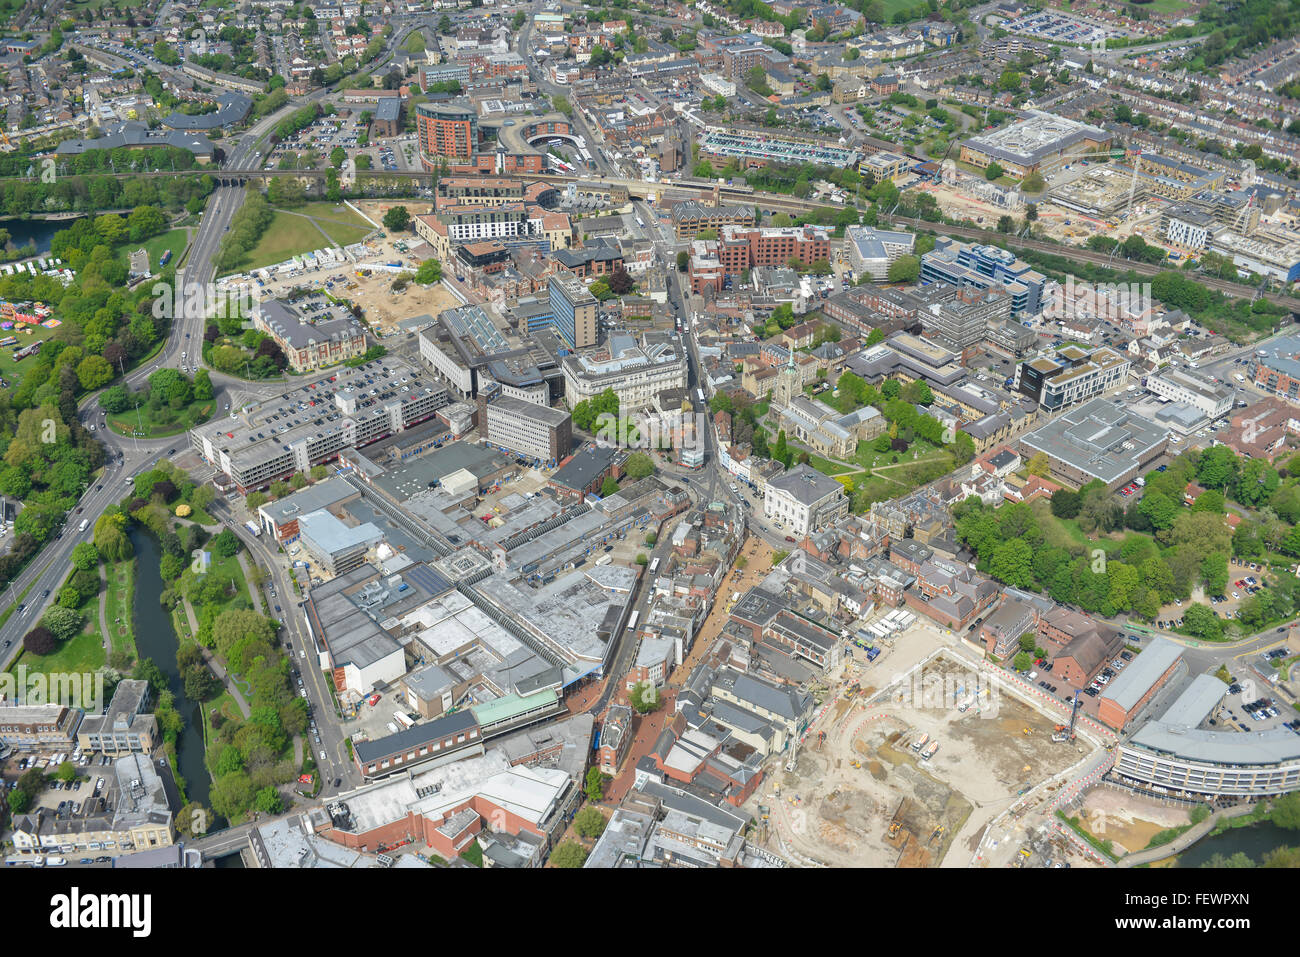 An aerial view of the city centre of Chelmsford, Essex - Stock Image